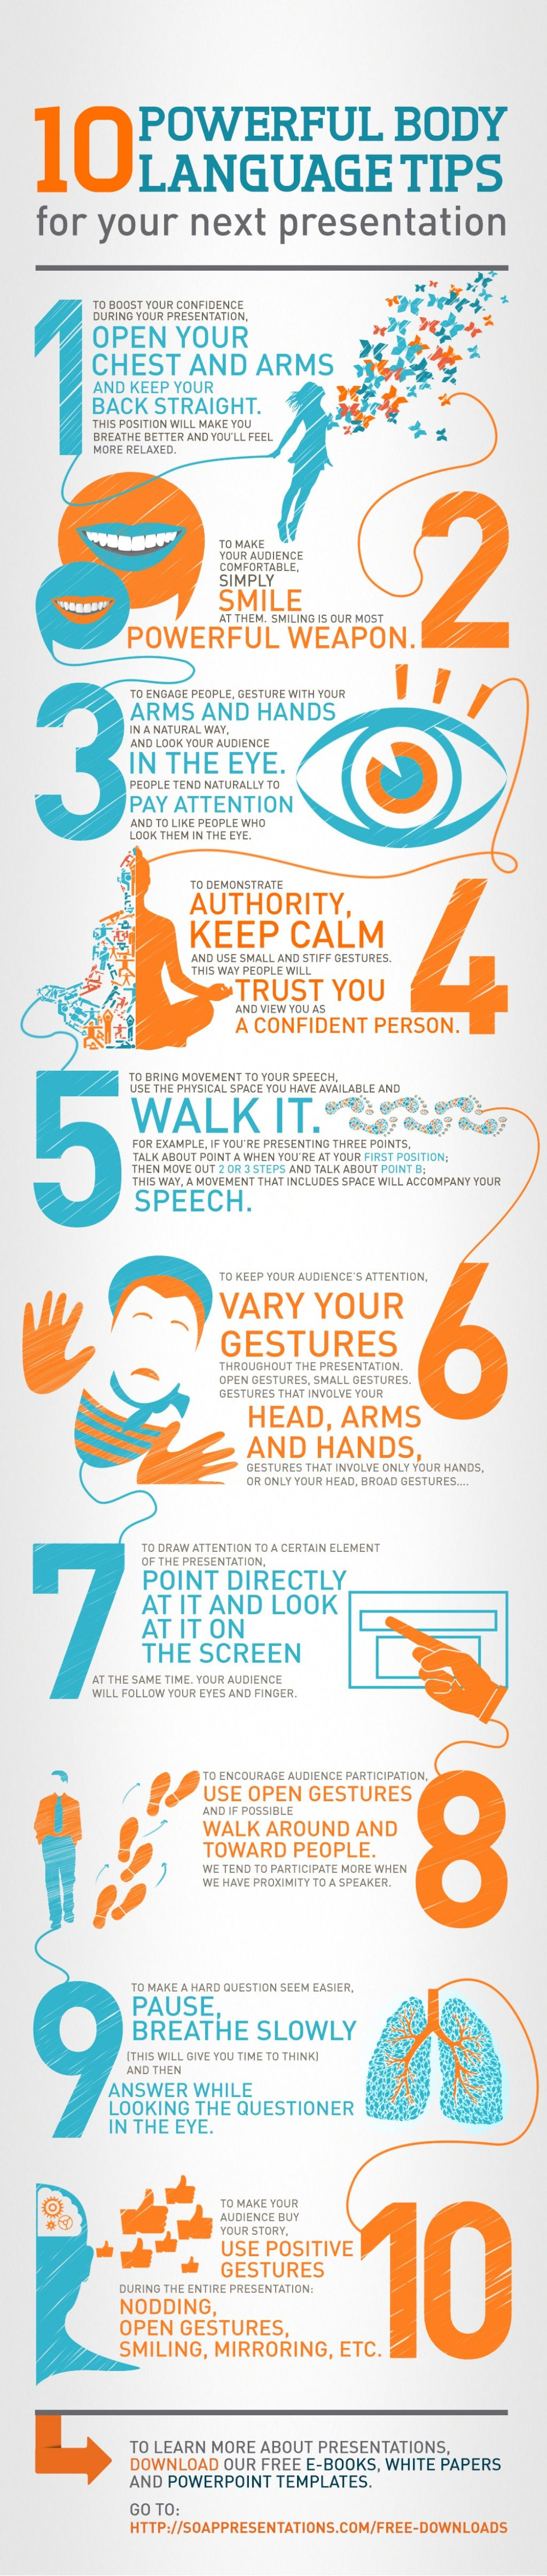 10 Powerful Body Language Tips For Your Next Presentation #infographic…